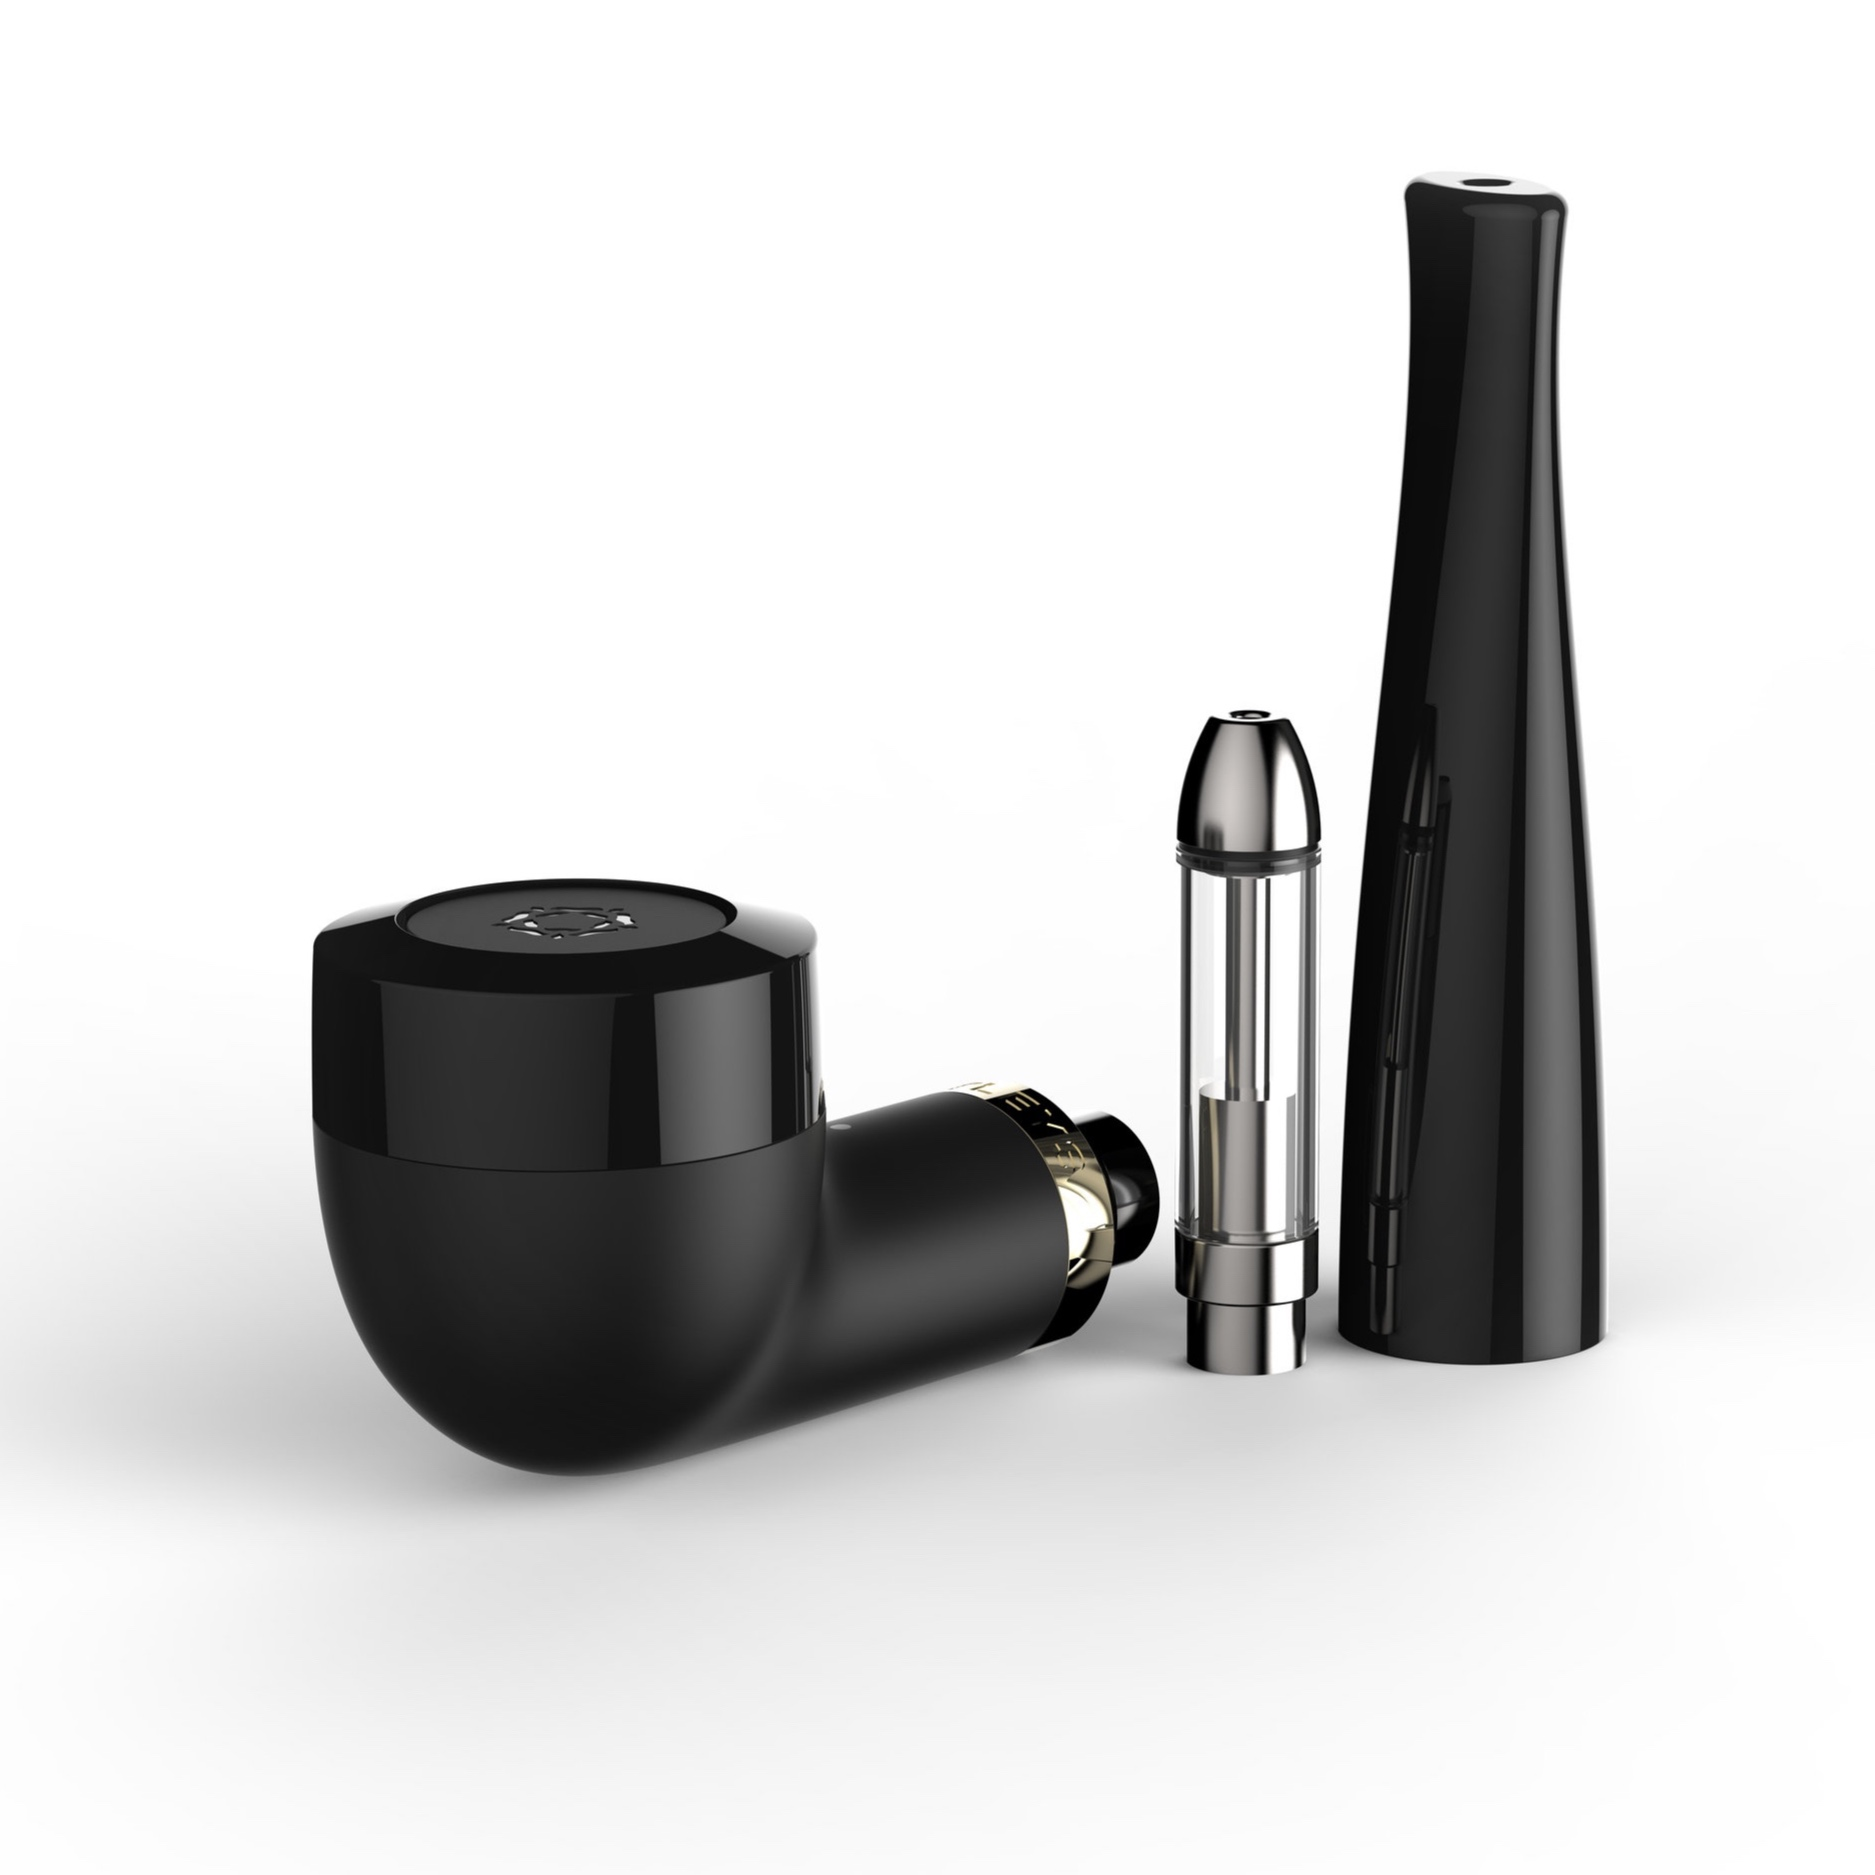 - The Cavendish is compatible with Astleys cartridges, the blends of which have been thoughtfully composed to compliment the performance of our vaporisers. The magnetic locking cartridge combined with button-free, inhale-activated ignition promises to provide the most elegant vape experience.